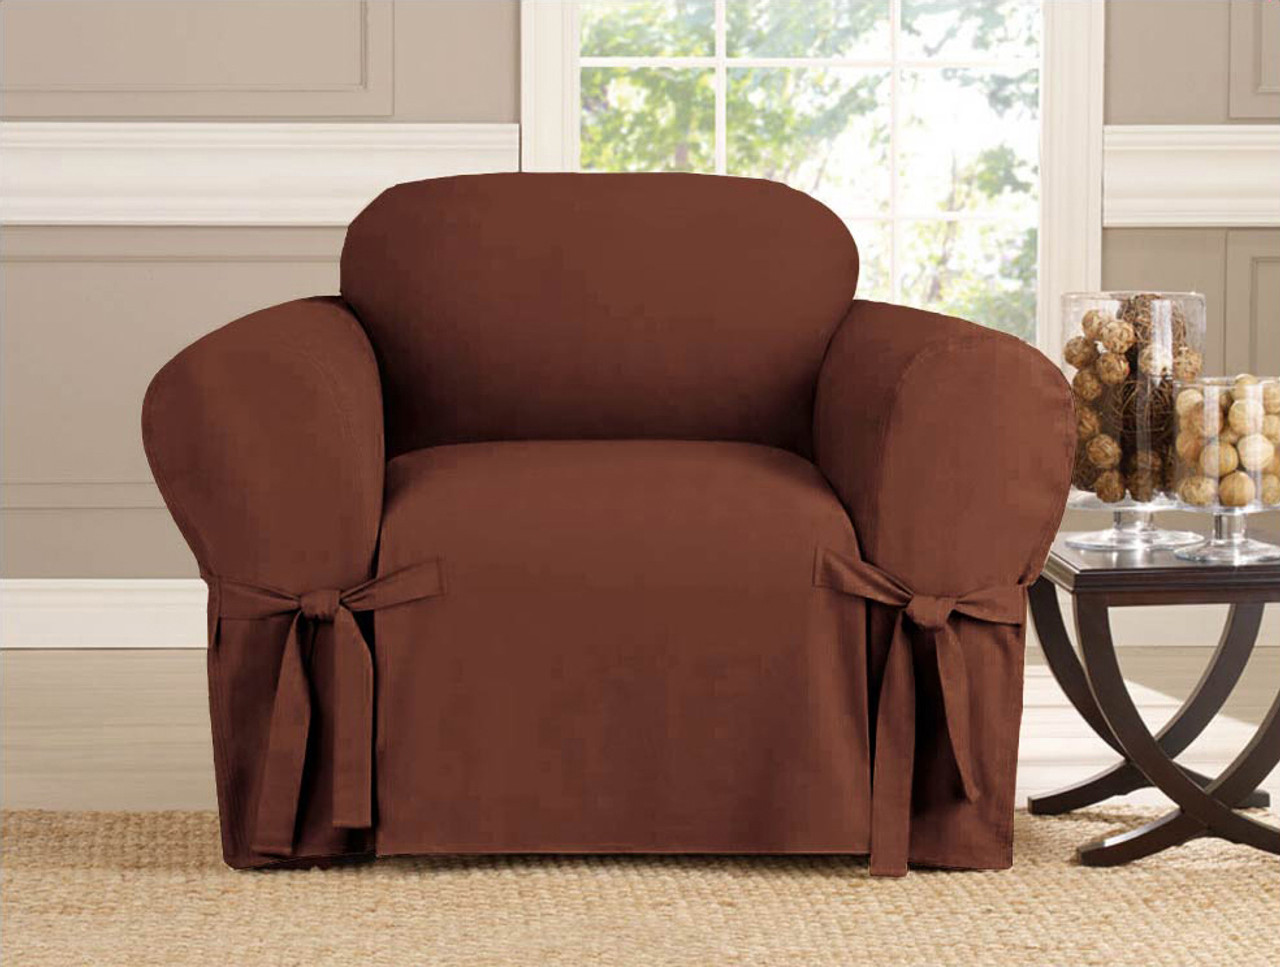 Kashi home micro suede loveseat slipcover beige black for Black furniture slipcovers